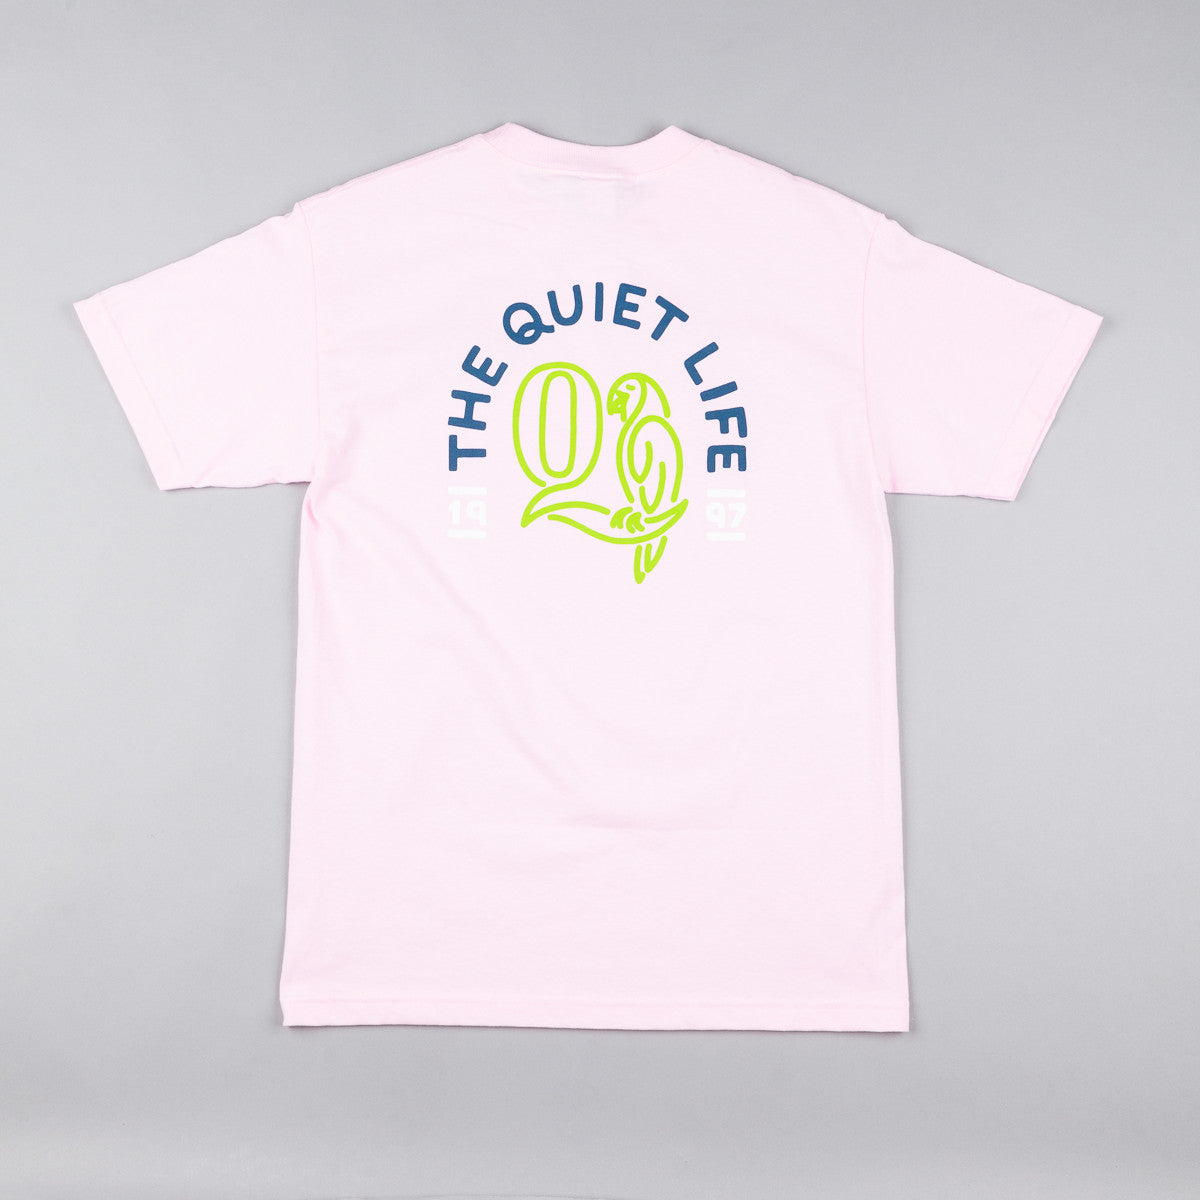 The Quiet Life Parrot T-Shirt - Pink